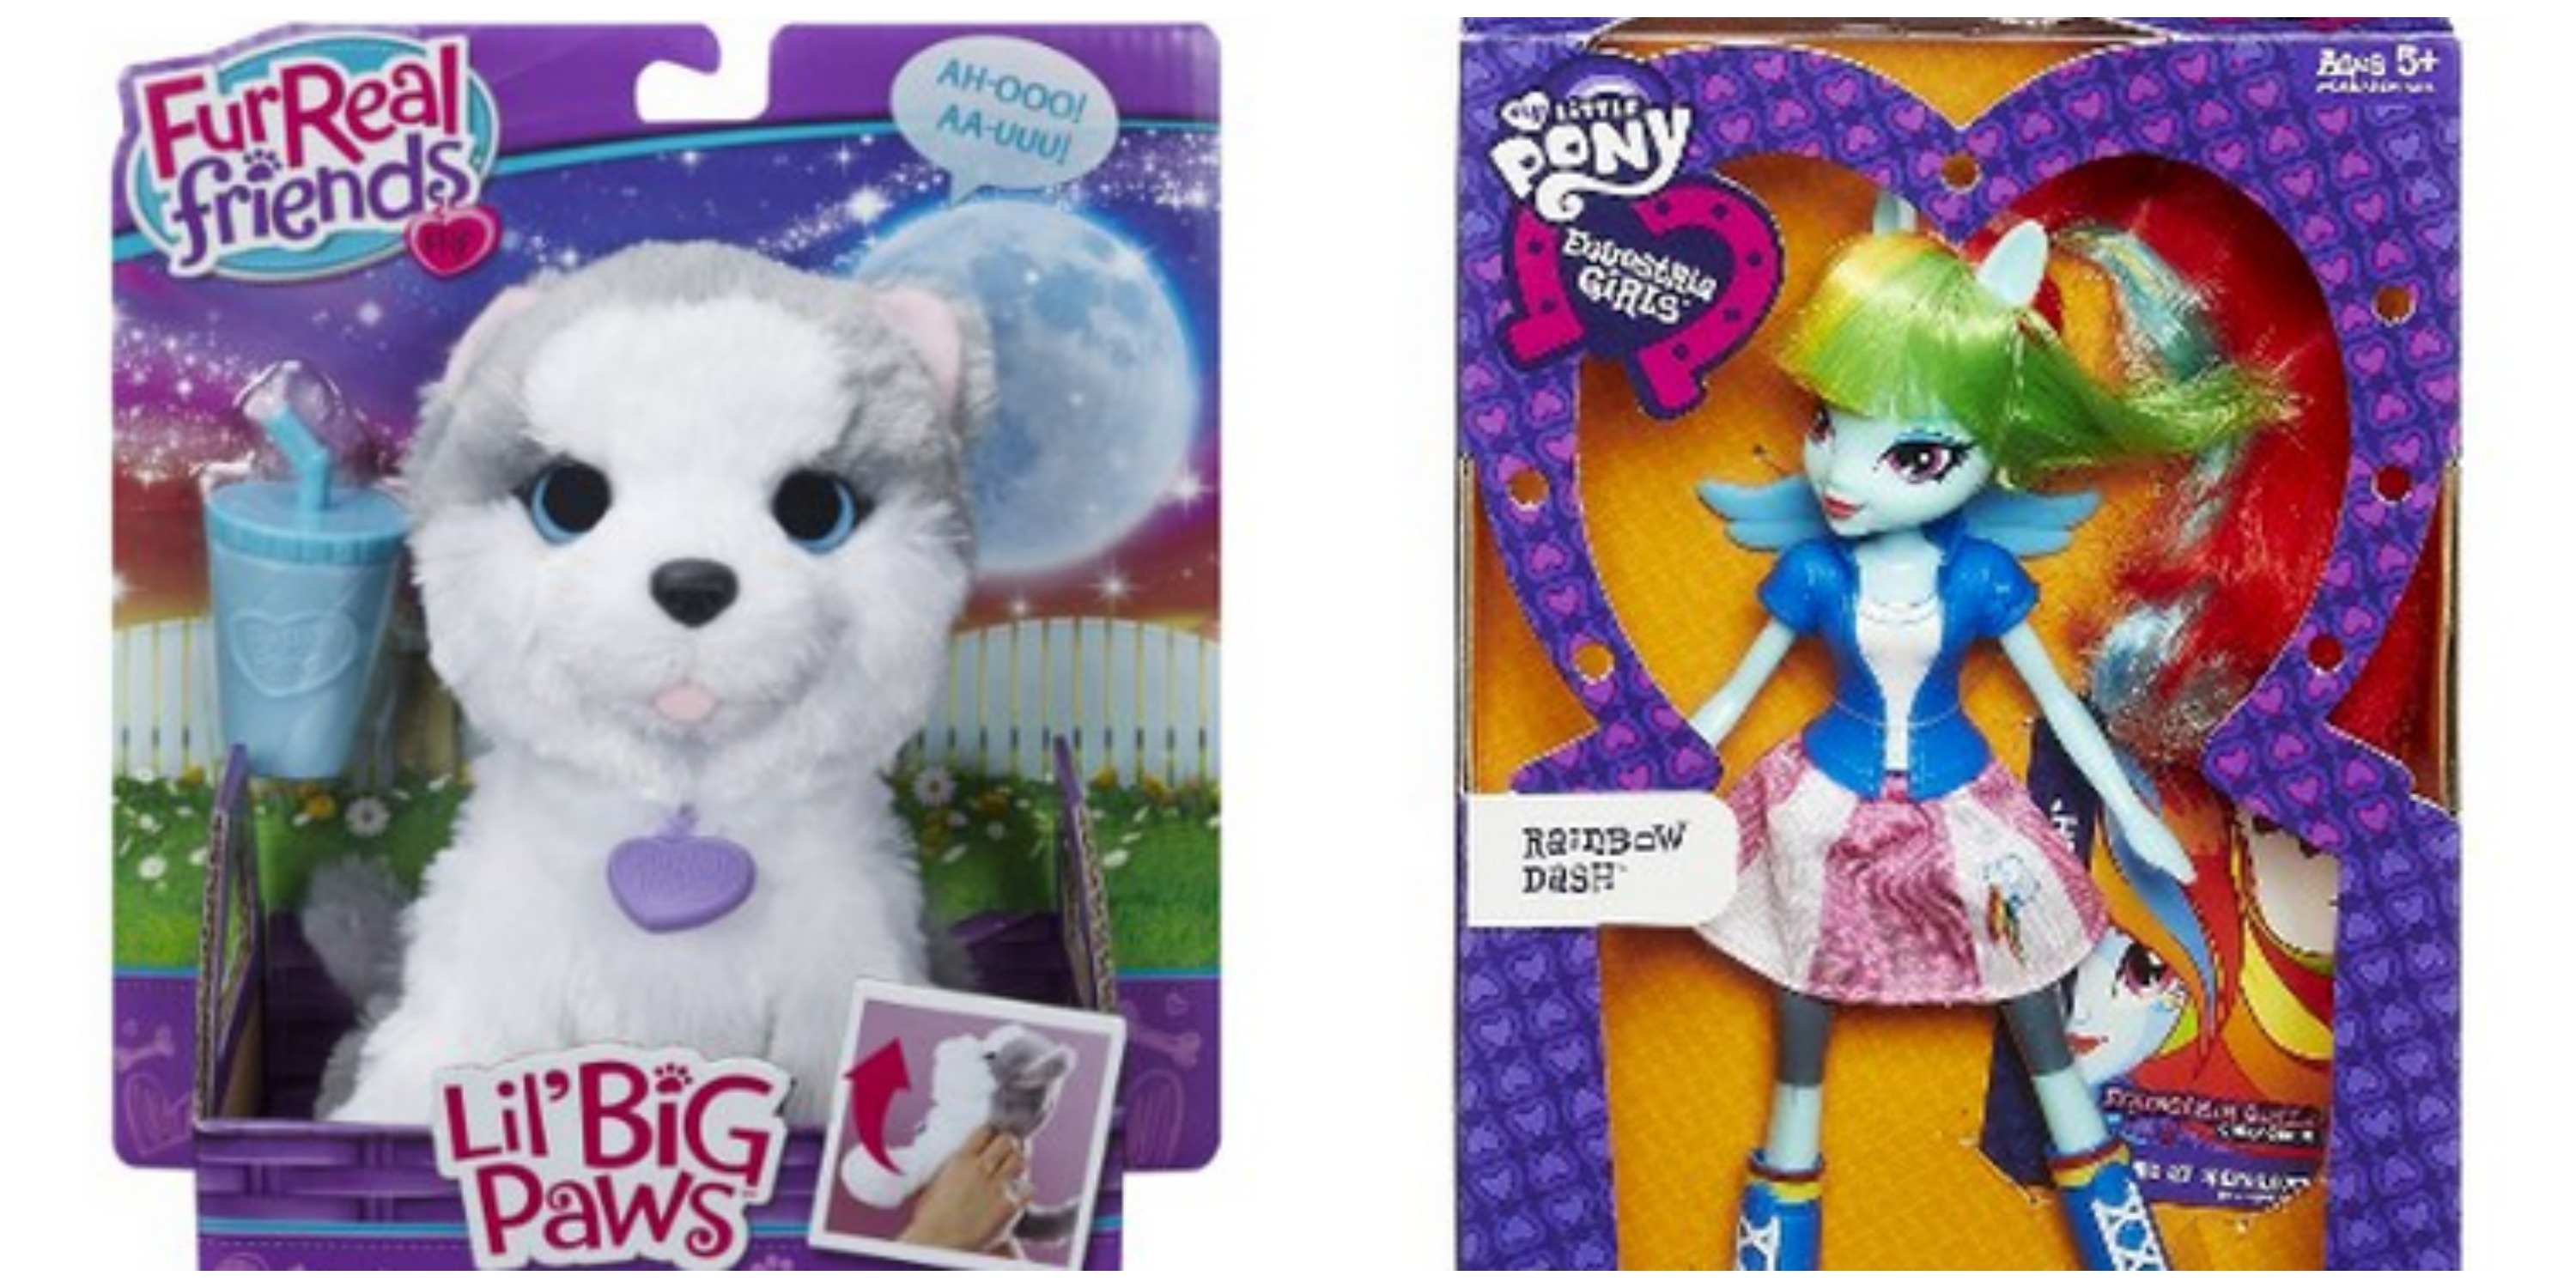 Target: FurReal Pets and Equestria Dolls as low as $3 - My